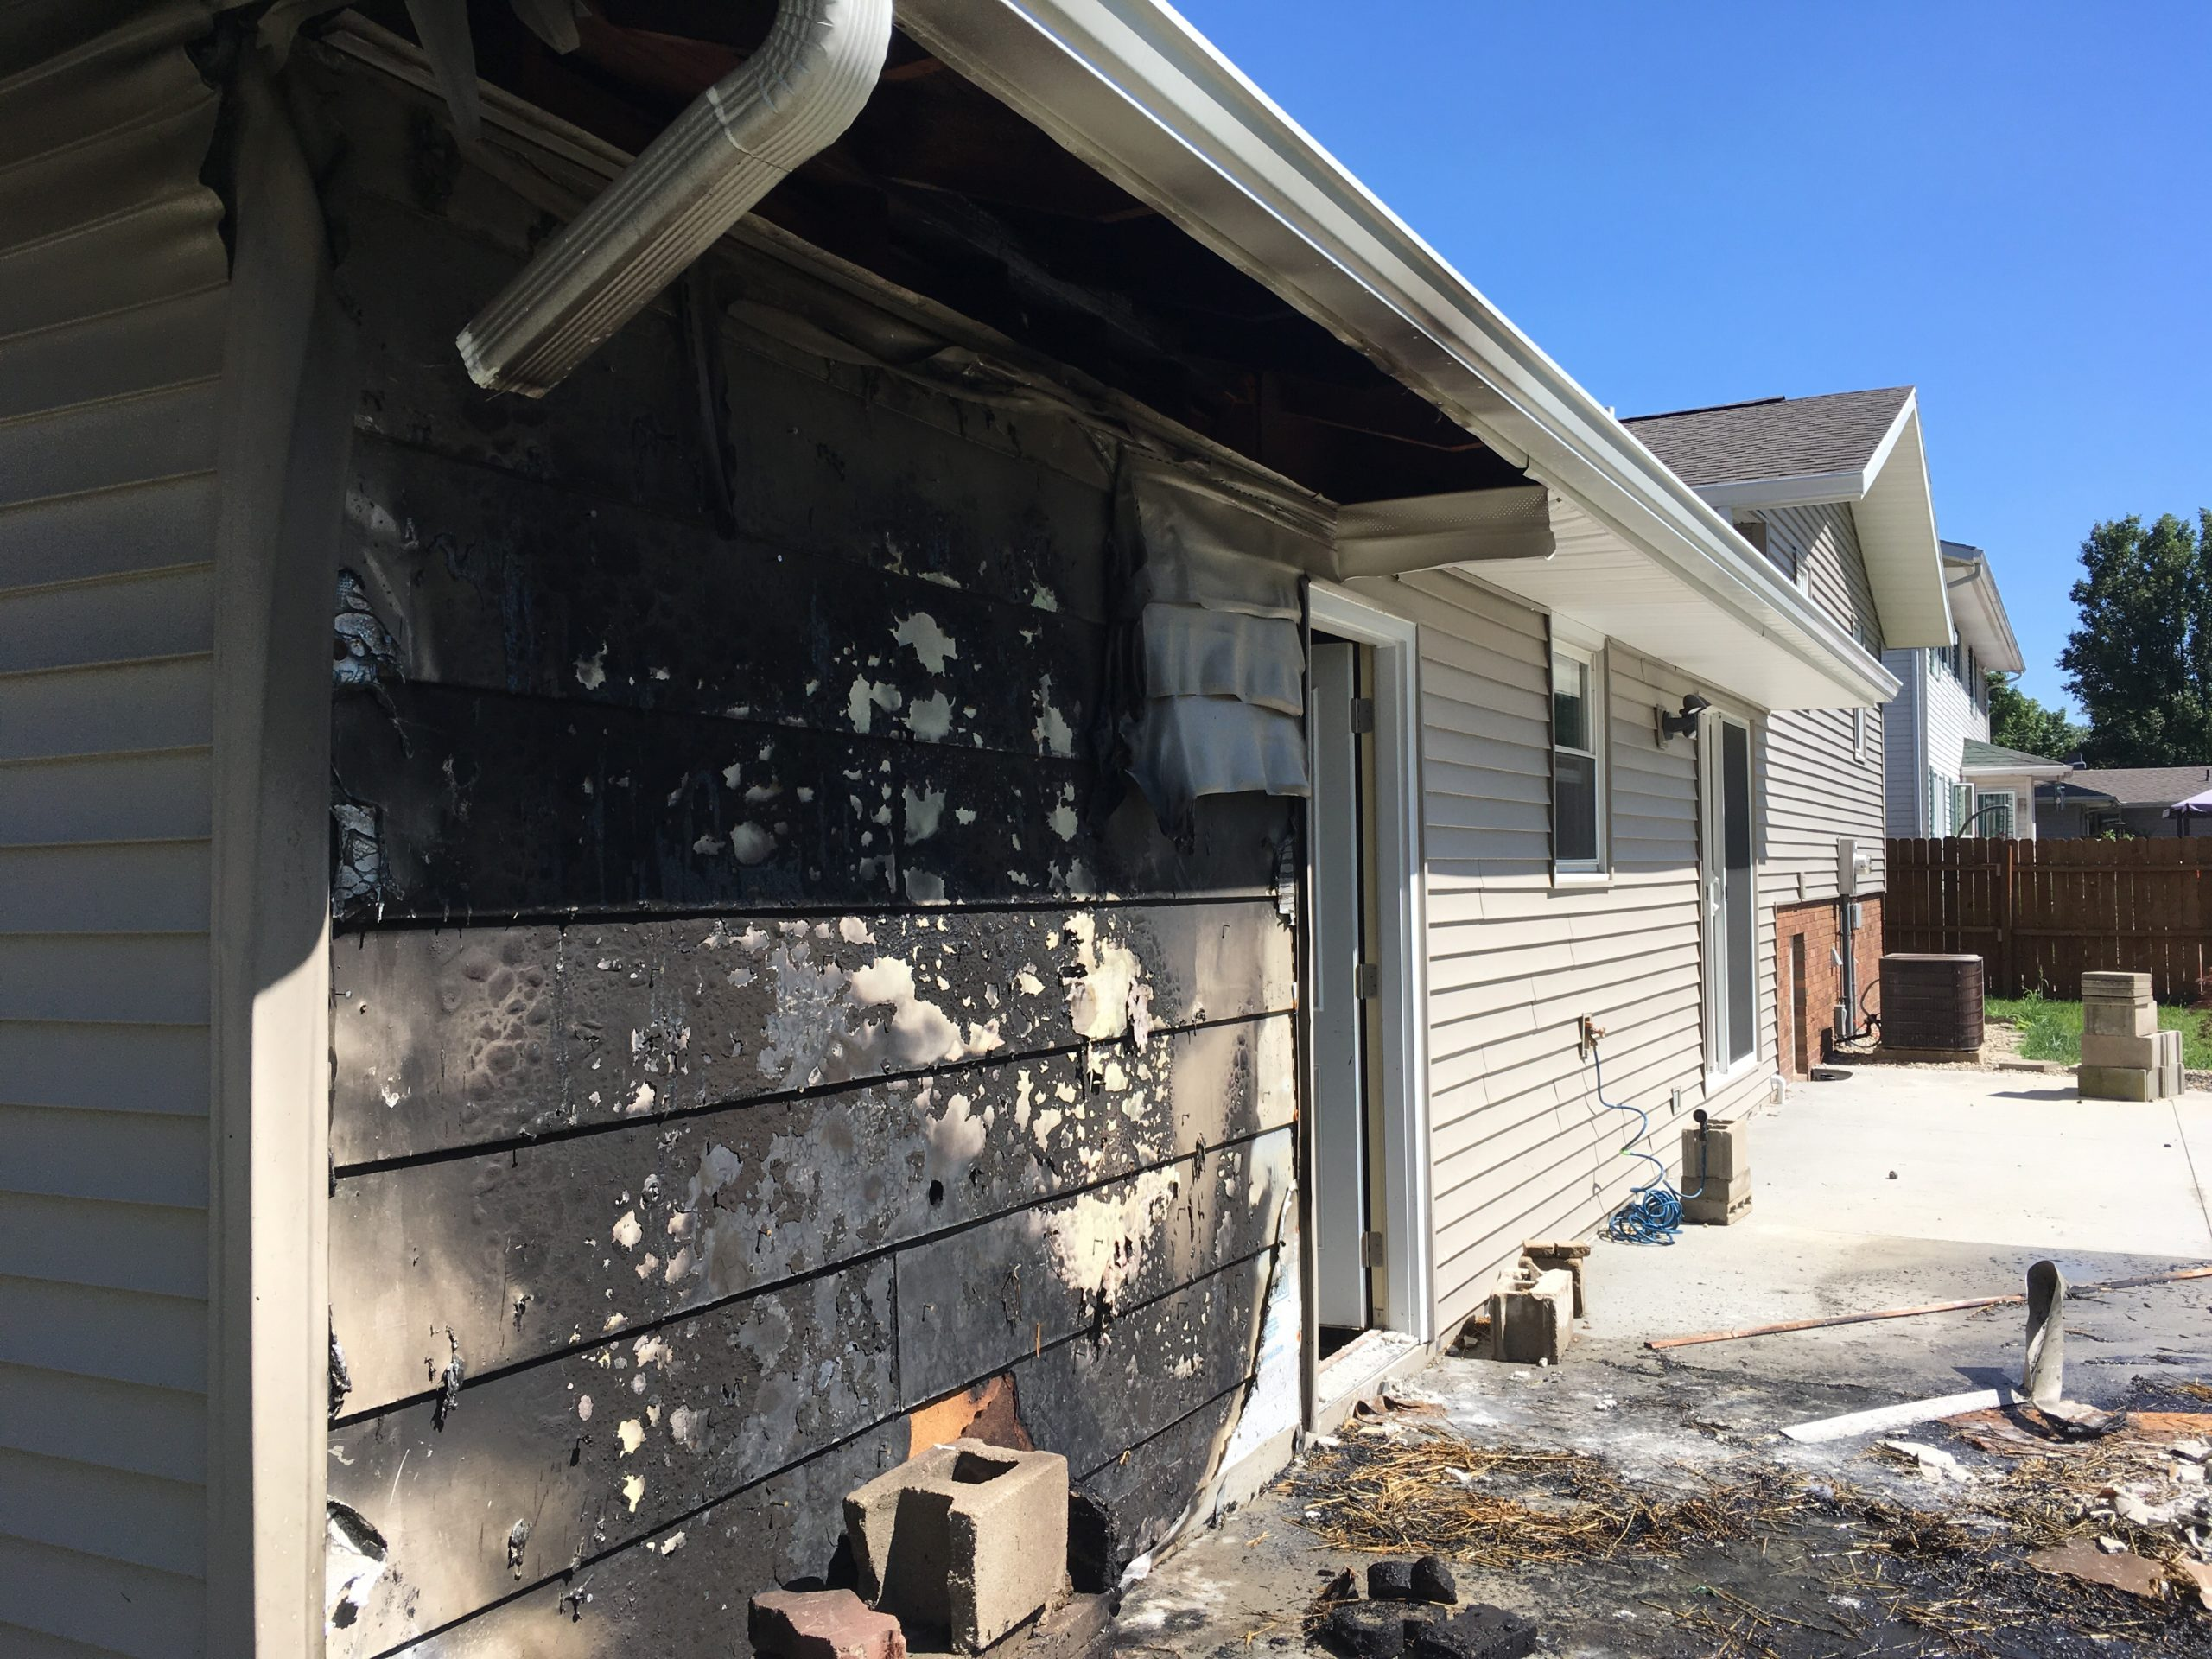 Effingham Fire Department Battles Residence Fire Tuesday Afternoon